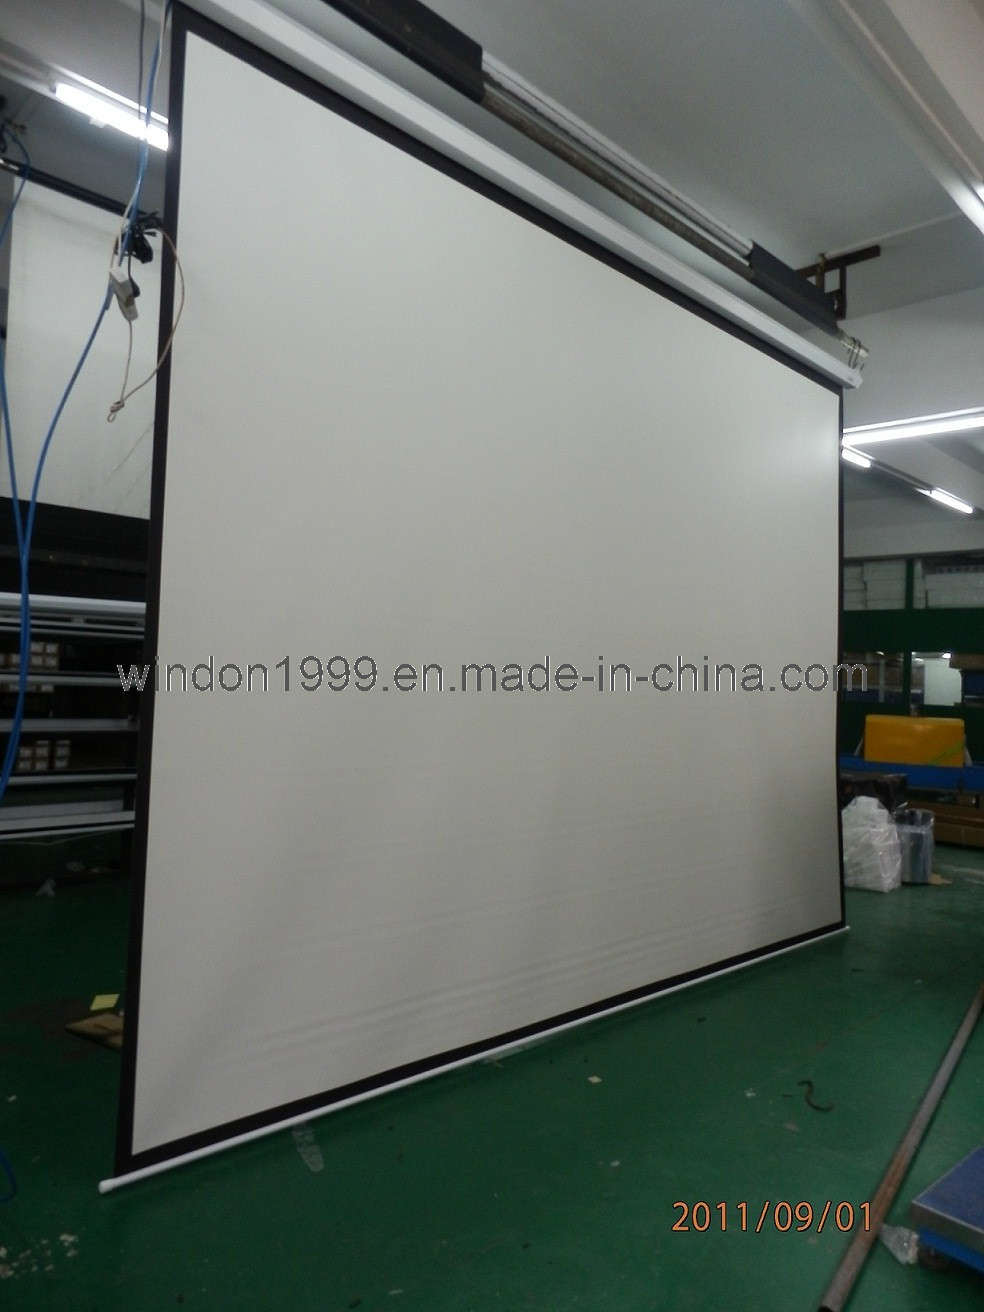 China Large Size Electric Projector Screen Big Motorized